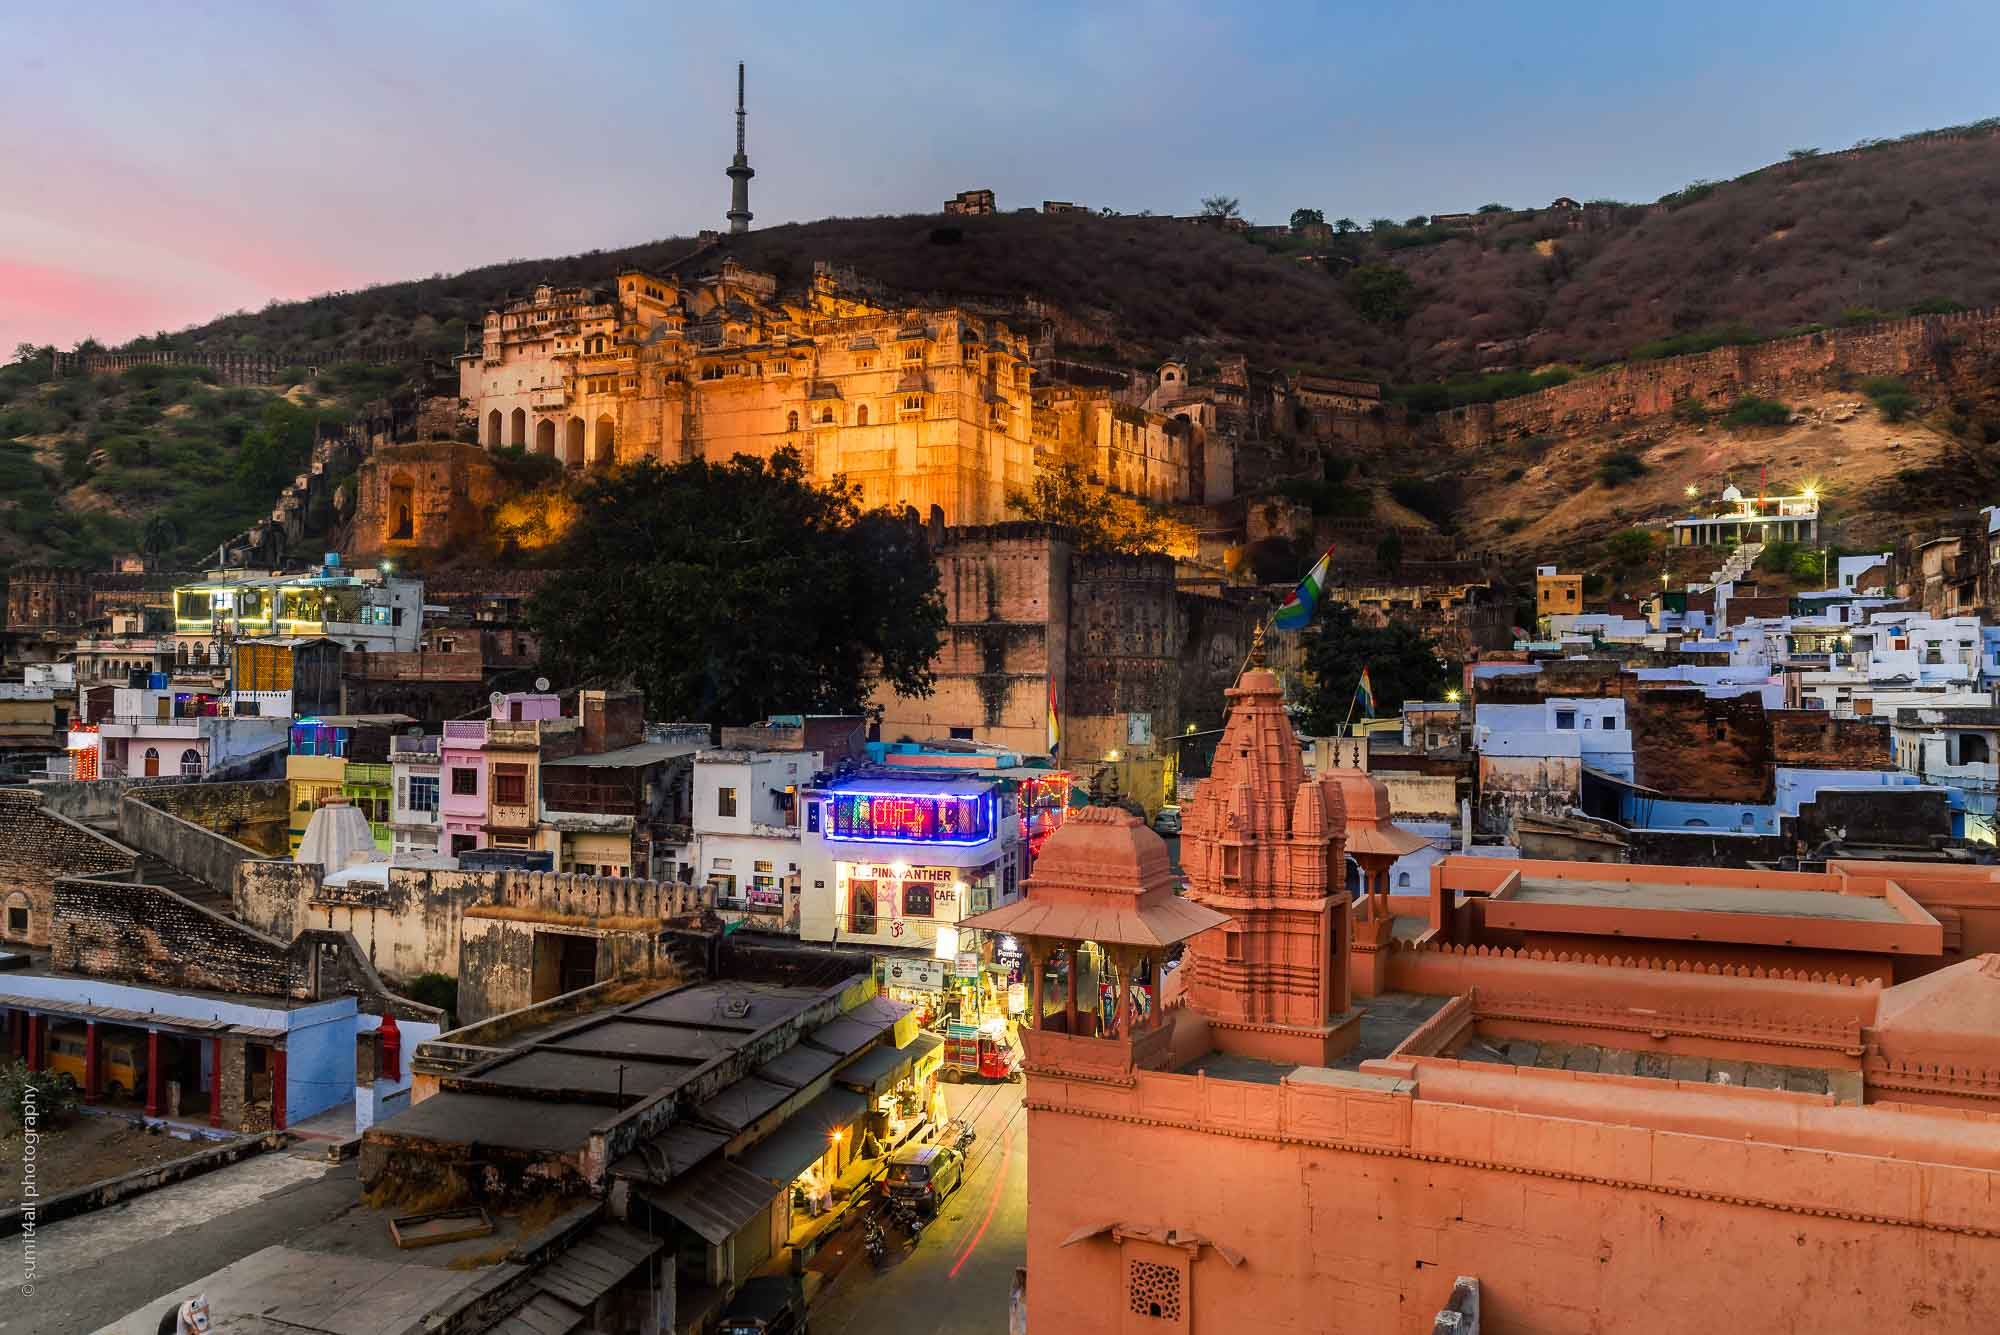 Sunset in Bundi, Rajasthan